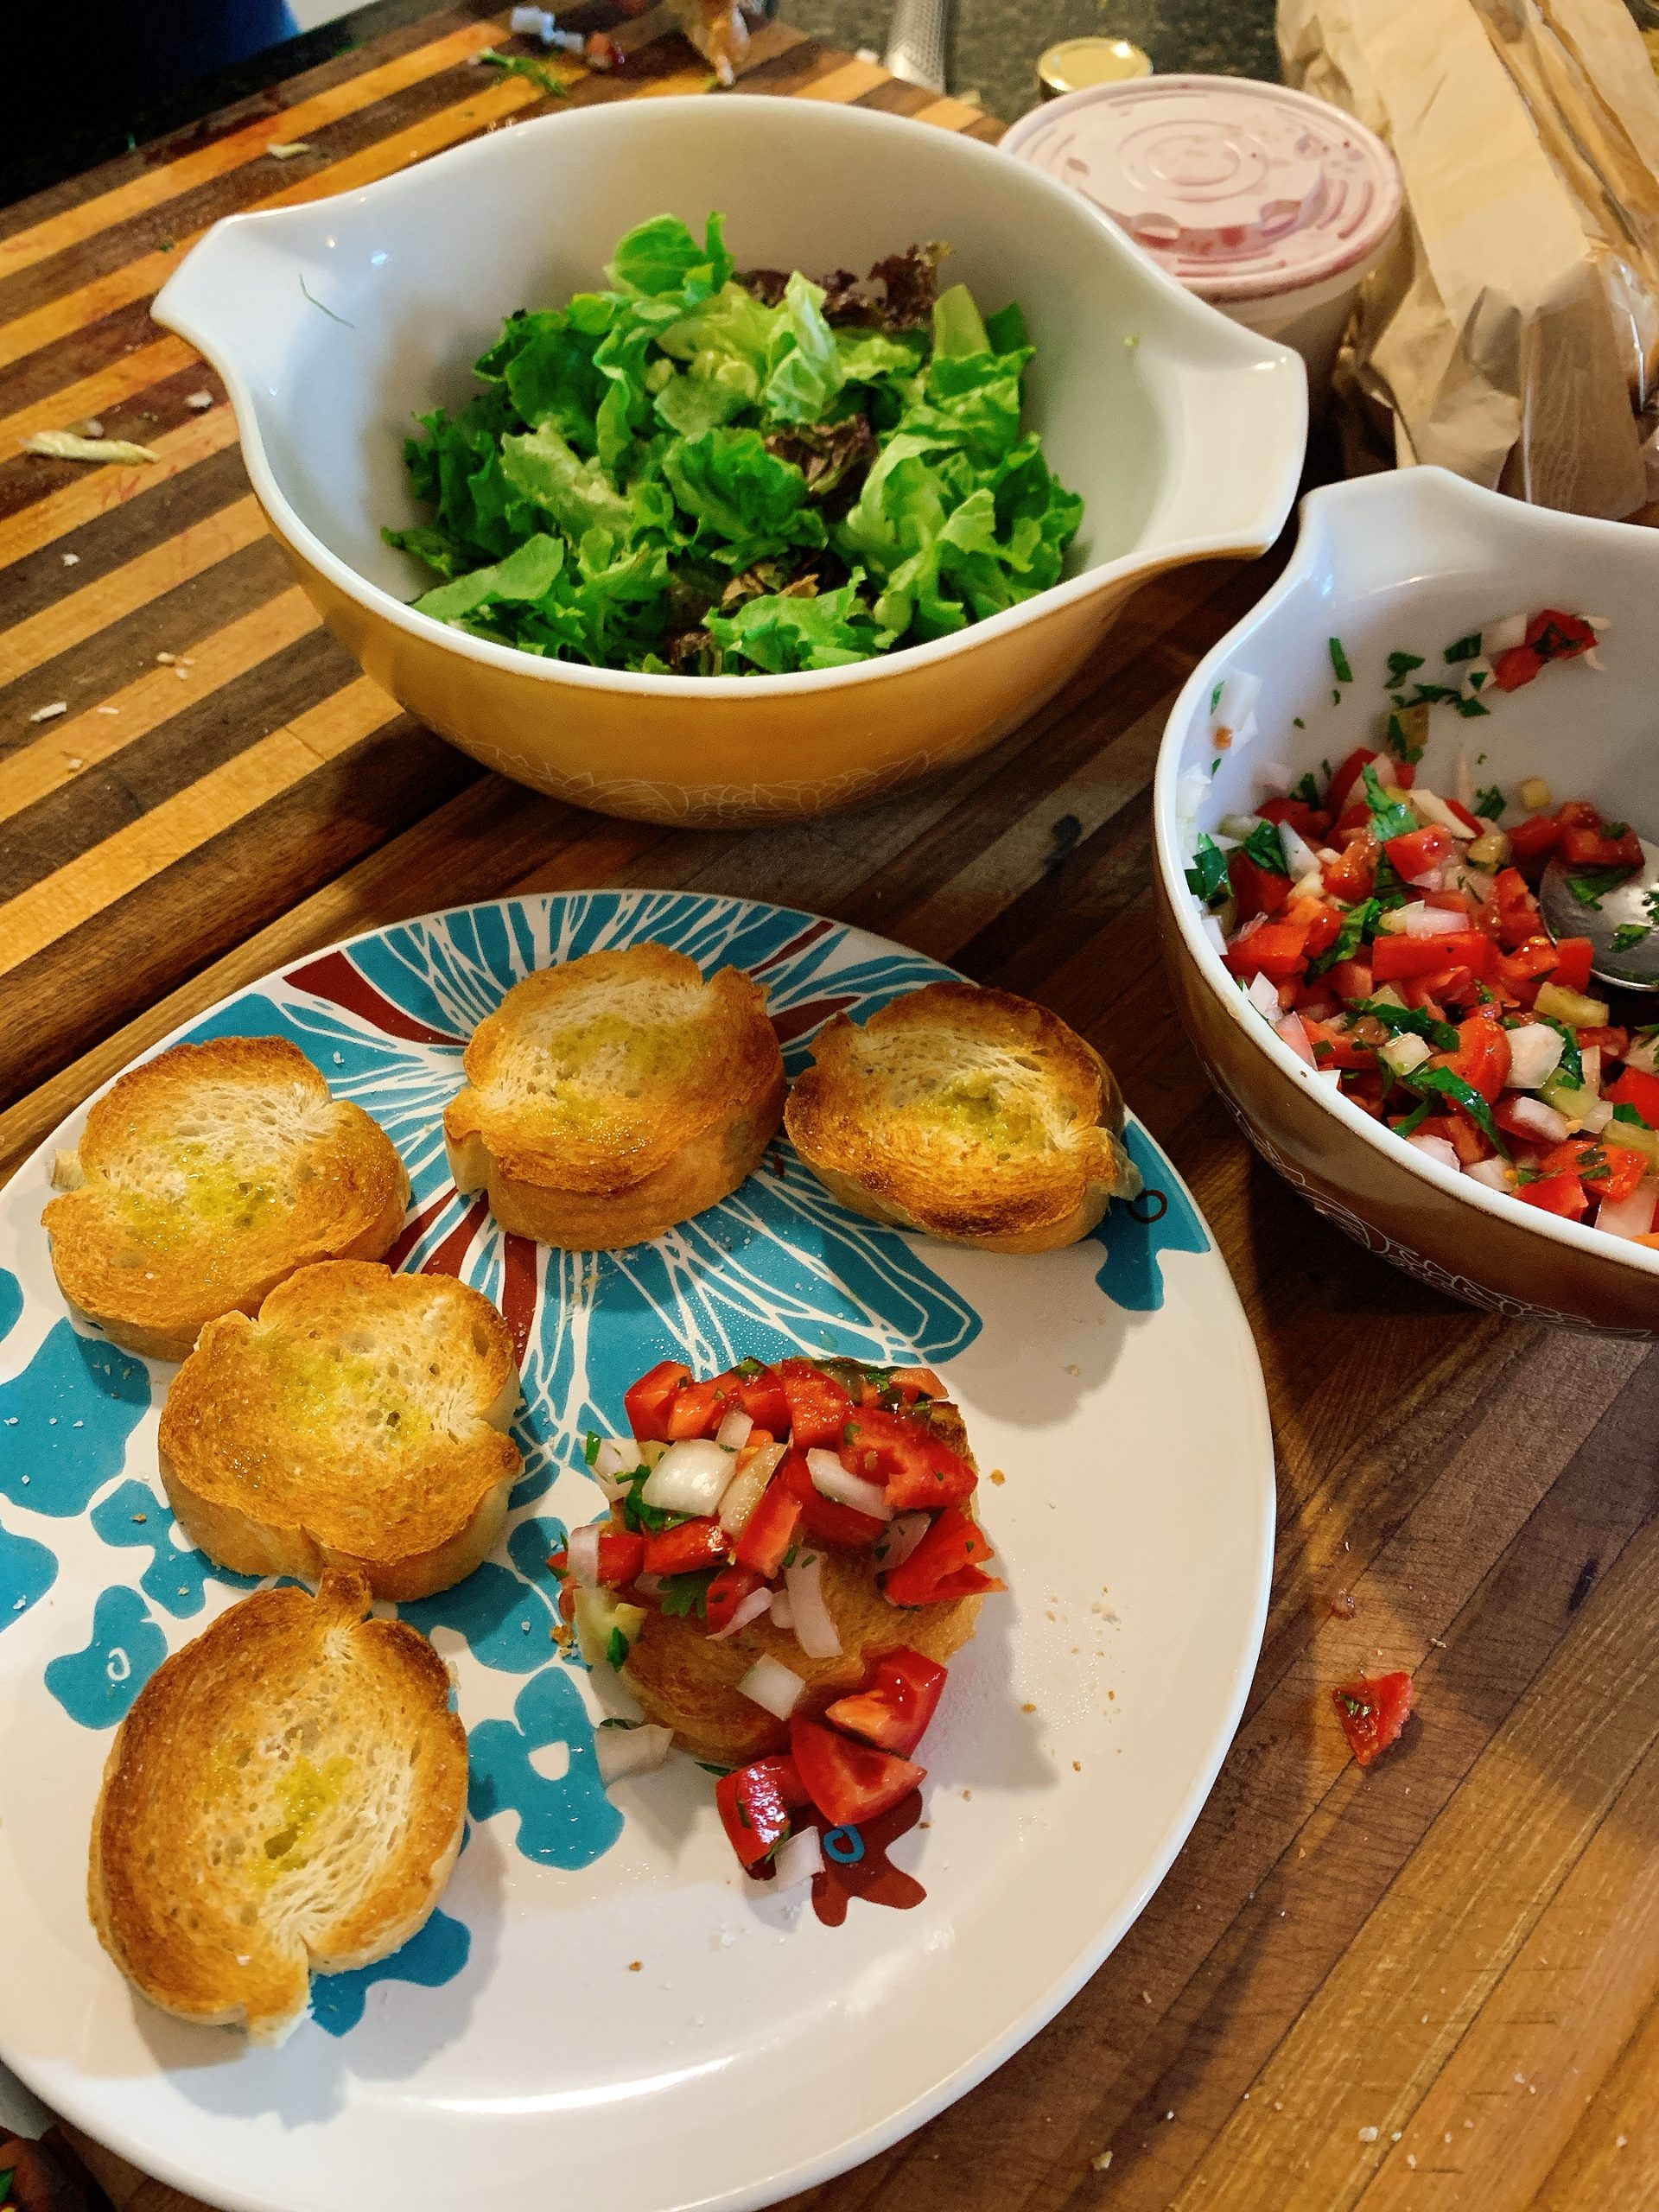 Sliced baguette, homemade salsa, and a bowl of greens.